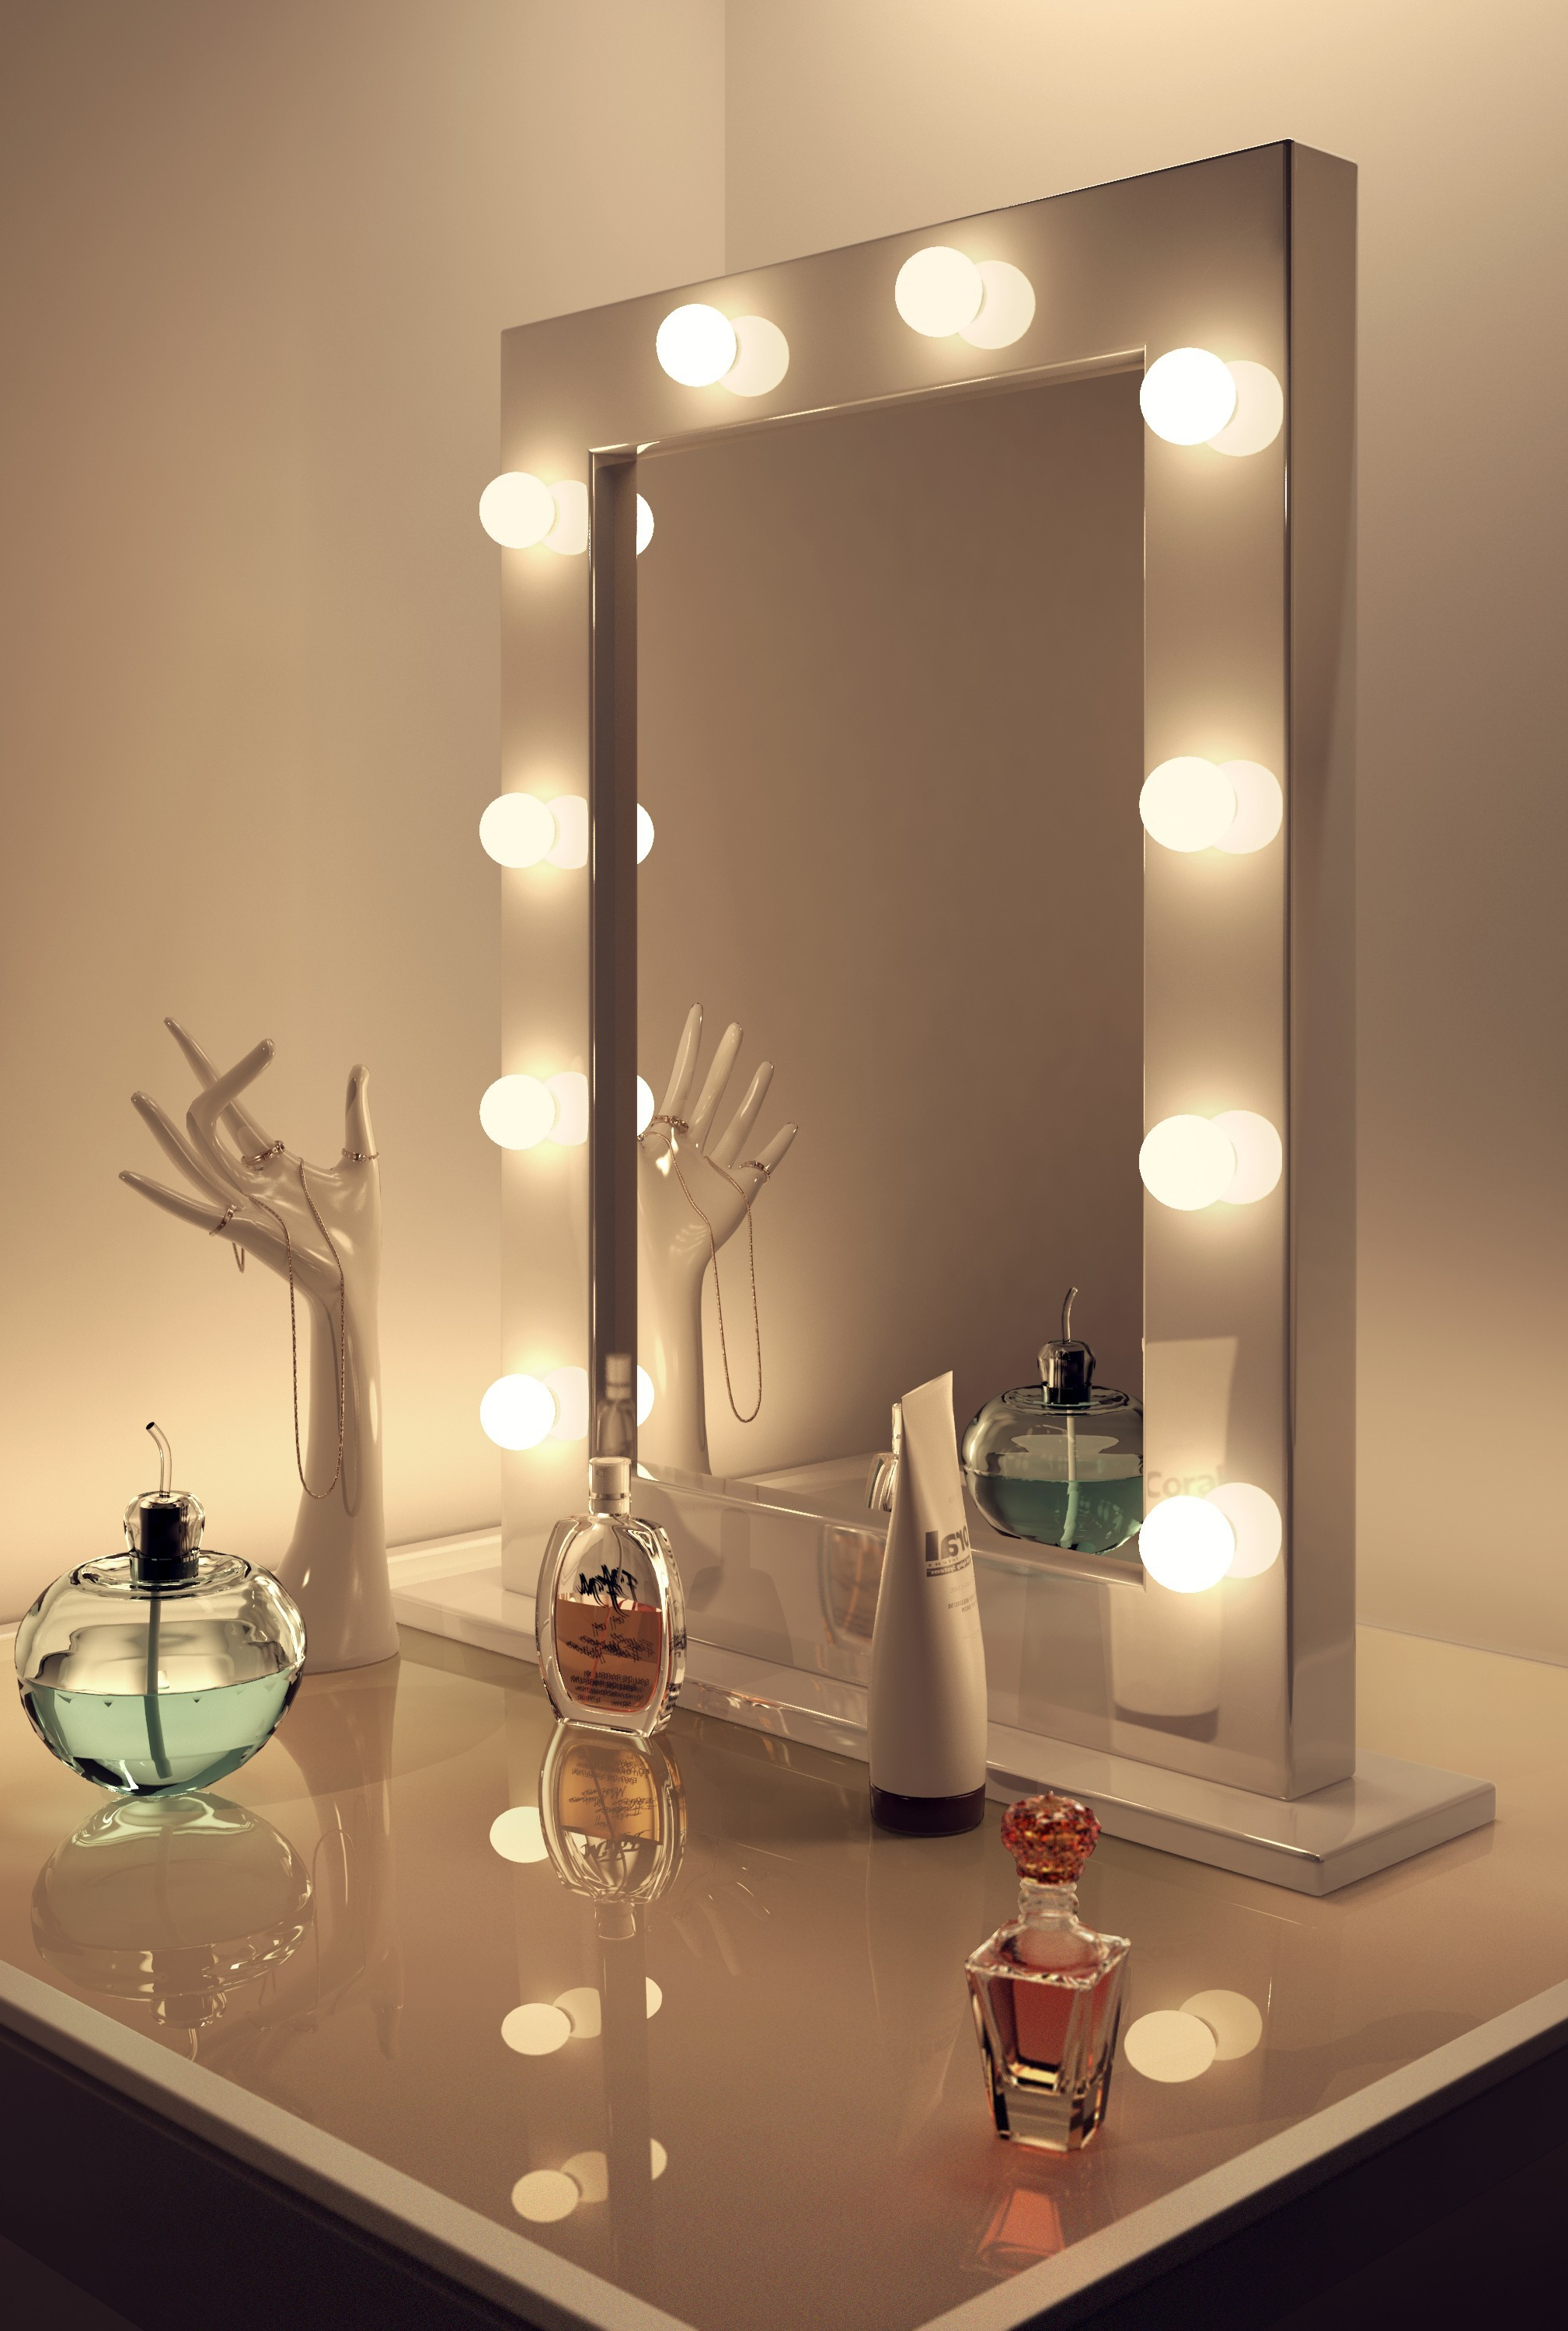 Light Up Wall Mirrors Within Recent Vanity Wall Mirror With Lights – A Great Way To Light Up Your Space (View 12 of 20)